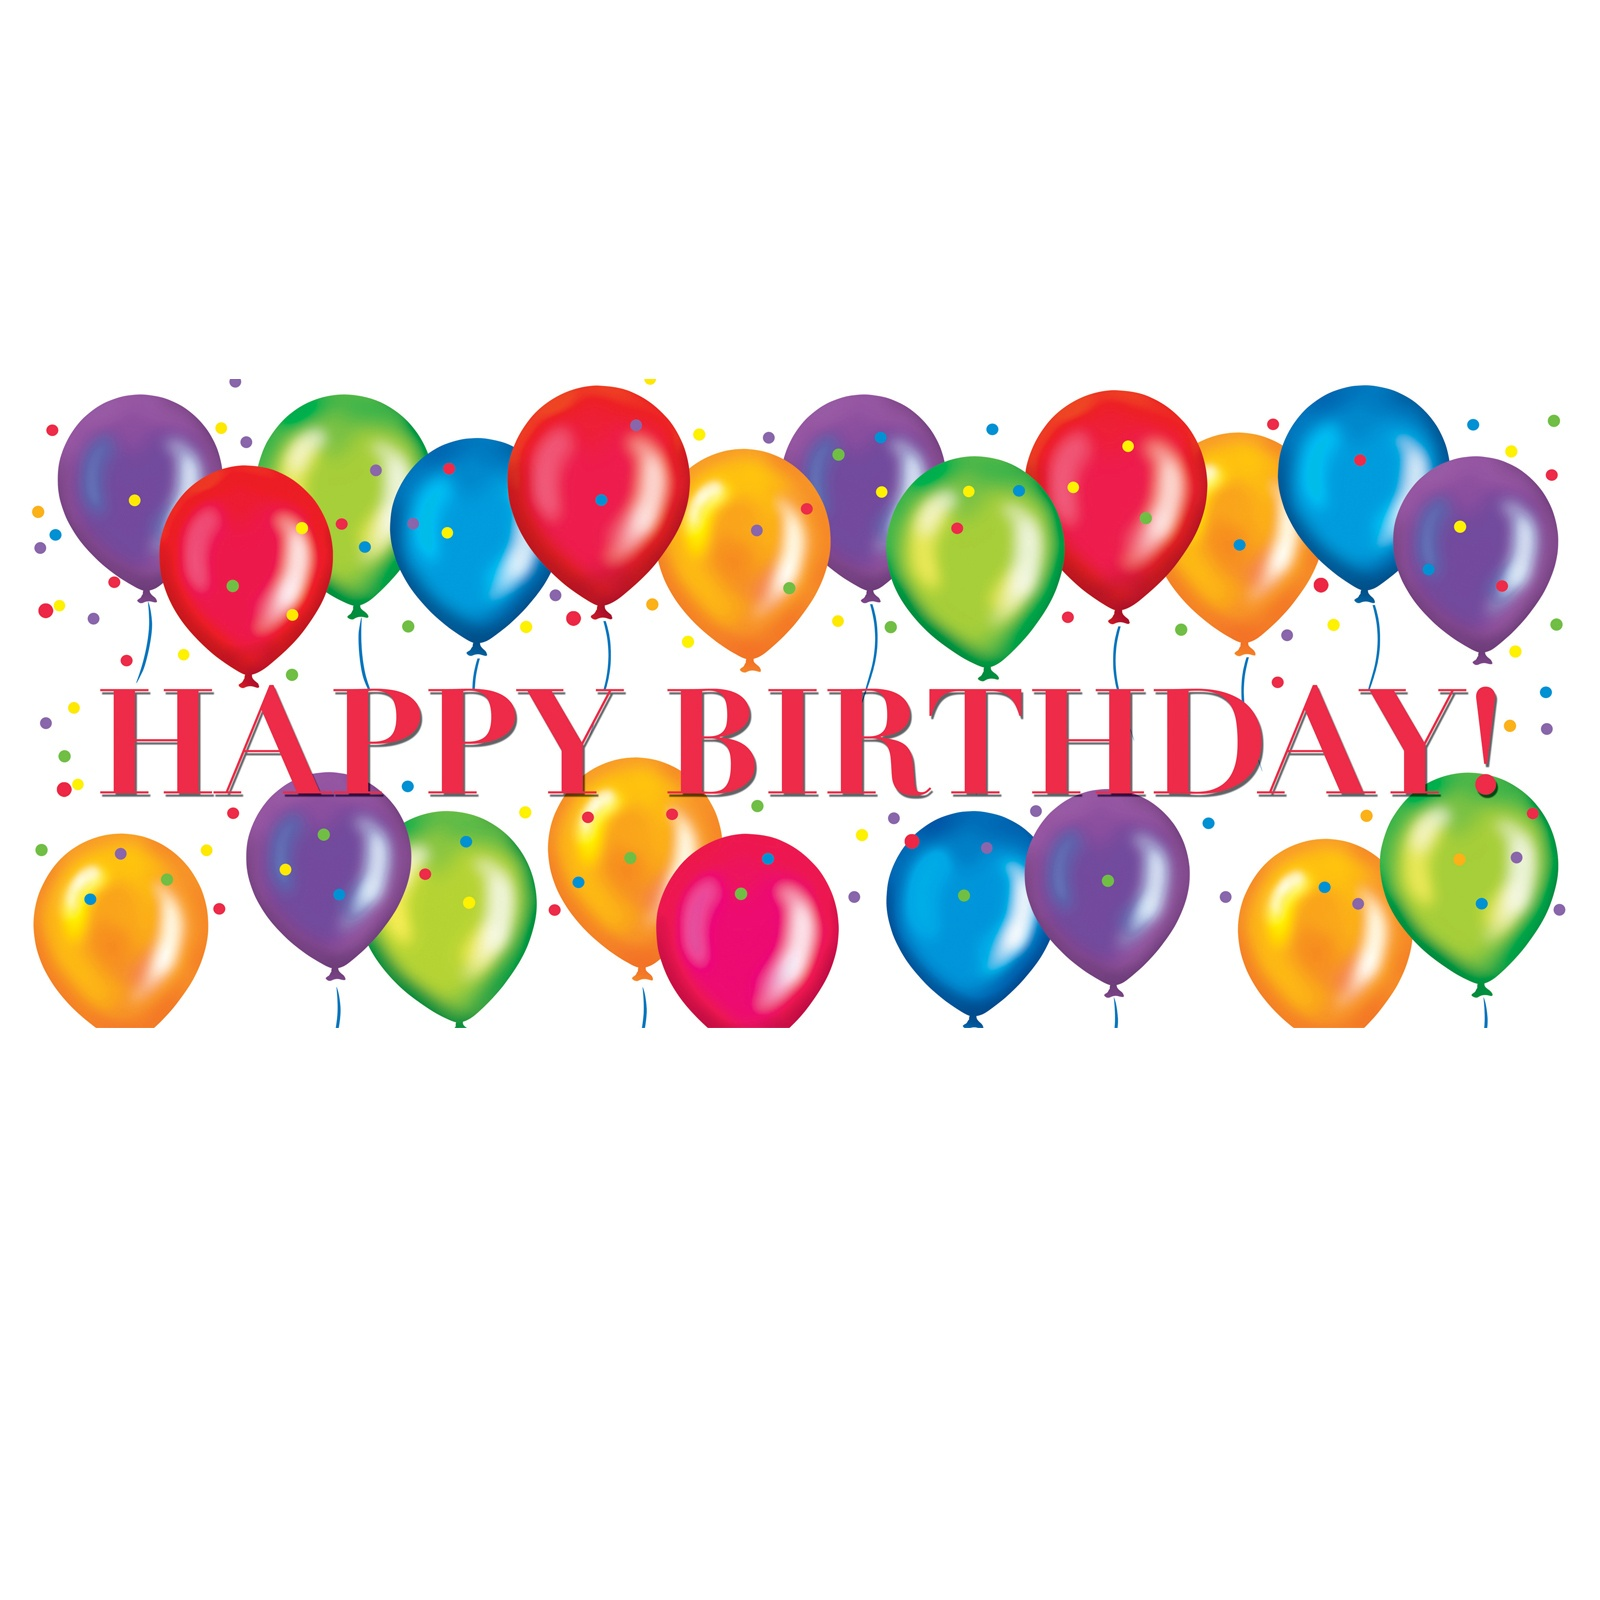 Free Free Happy Birthday Pics, Download Free Clip Art, Free Clip Art - Birthday Clipart Free Printable